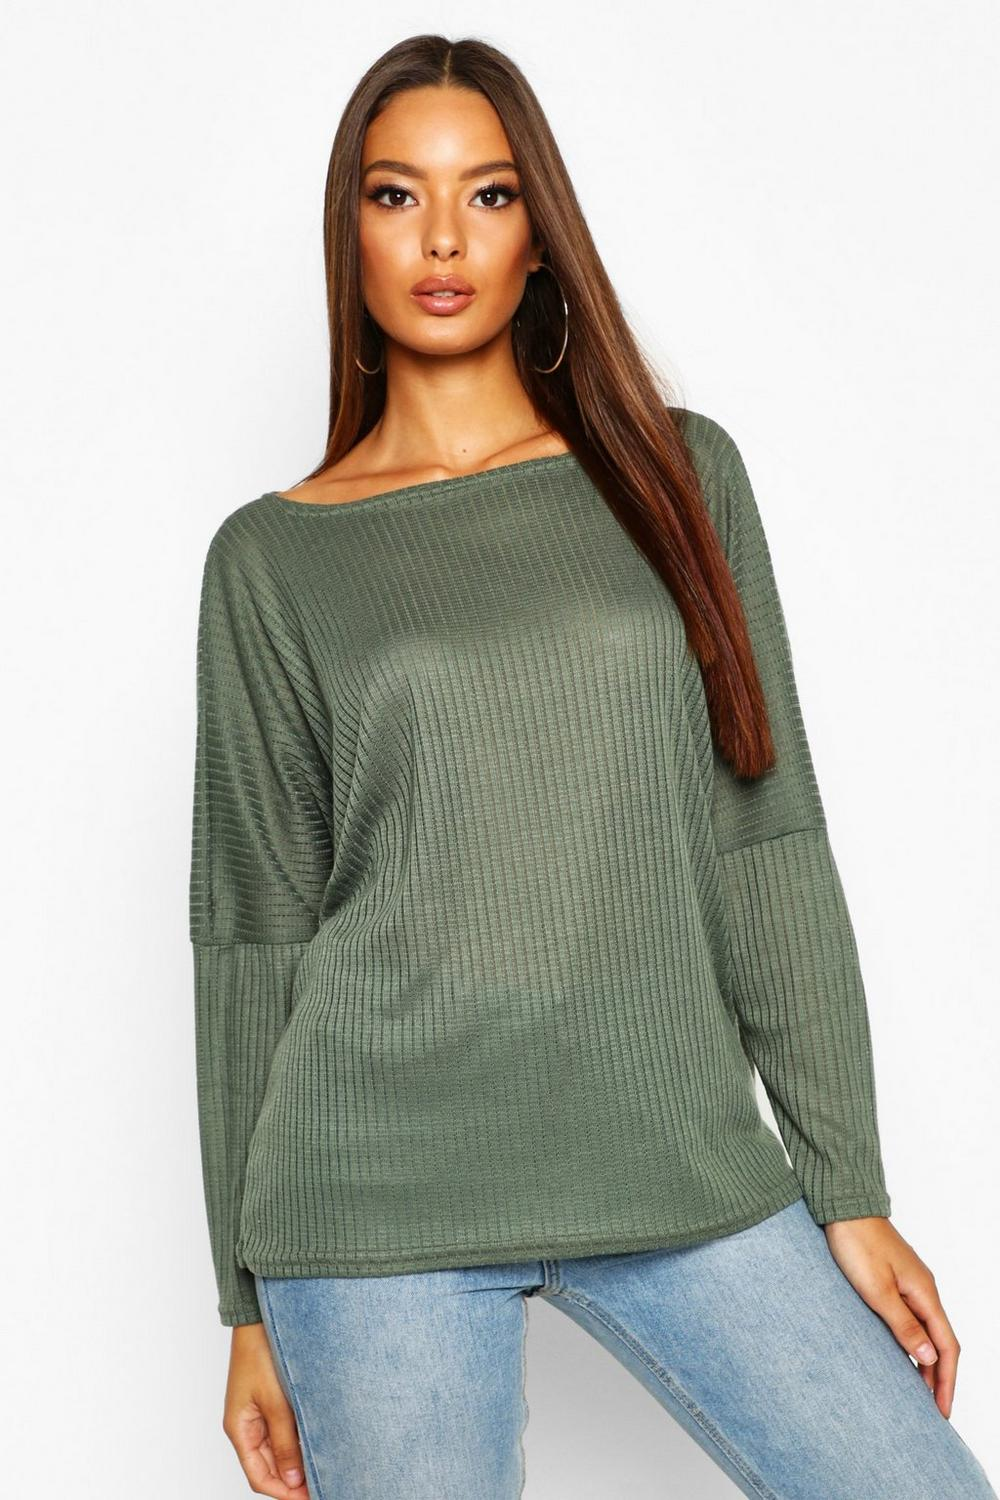 Eva Premium Fabric Oversized Top